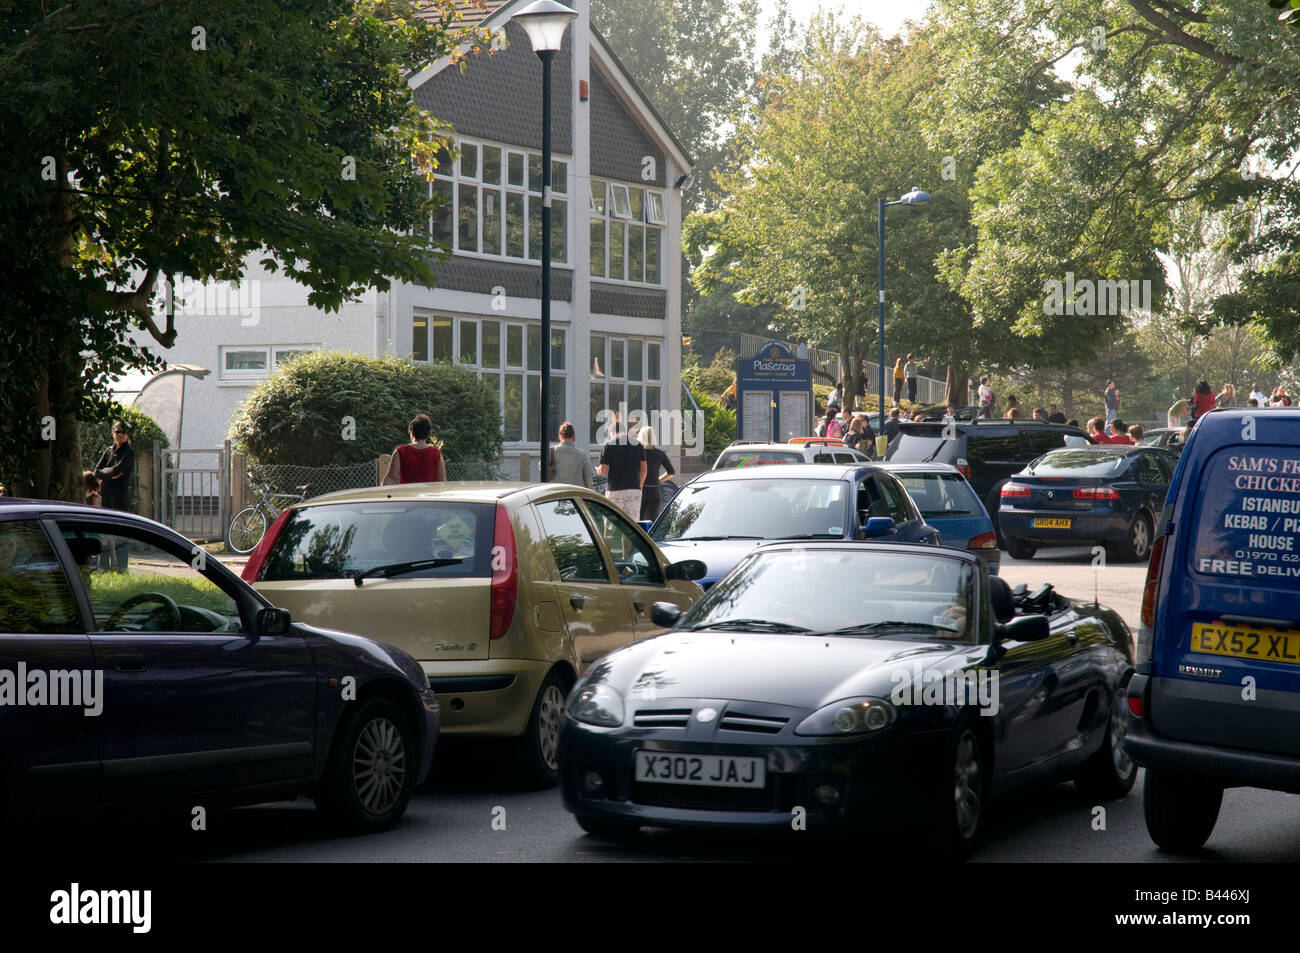 Queues of cars - parents waiting to collect children outside Plascrug Primary school Aberystwyth Wales UK - Stock Image